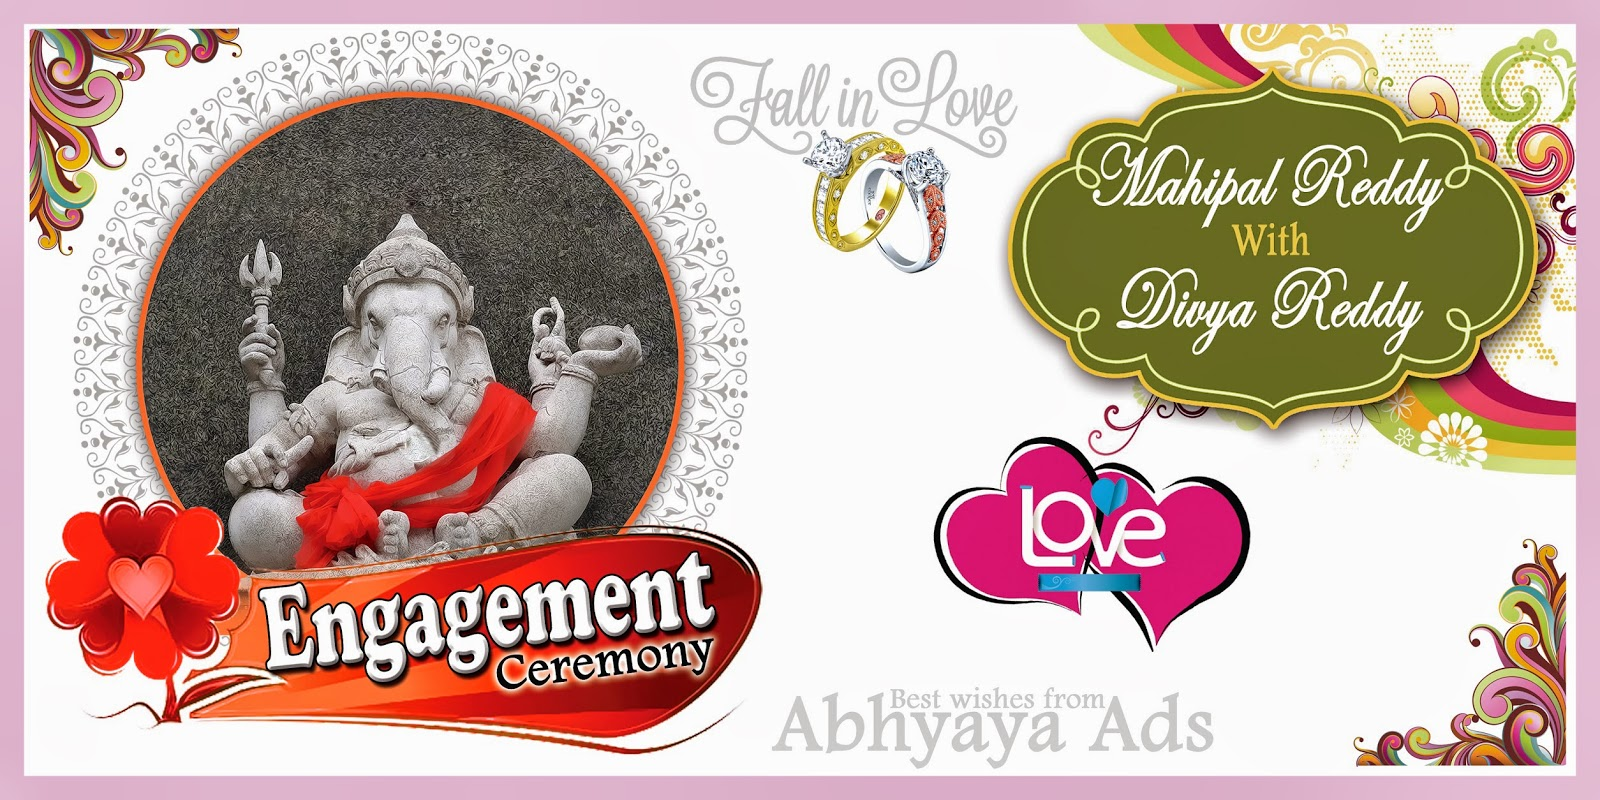 wedding flex banner design - ABHAYA ADS | Flex Printing